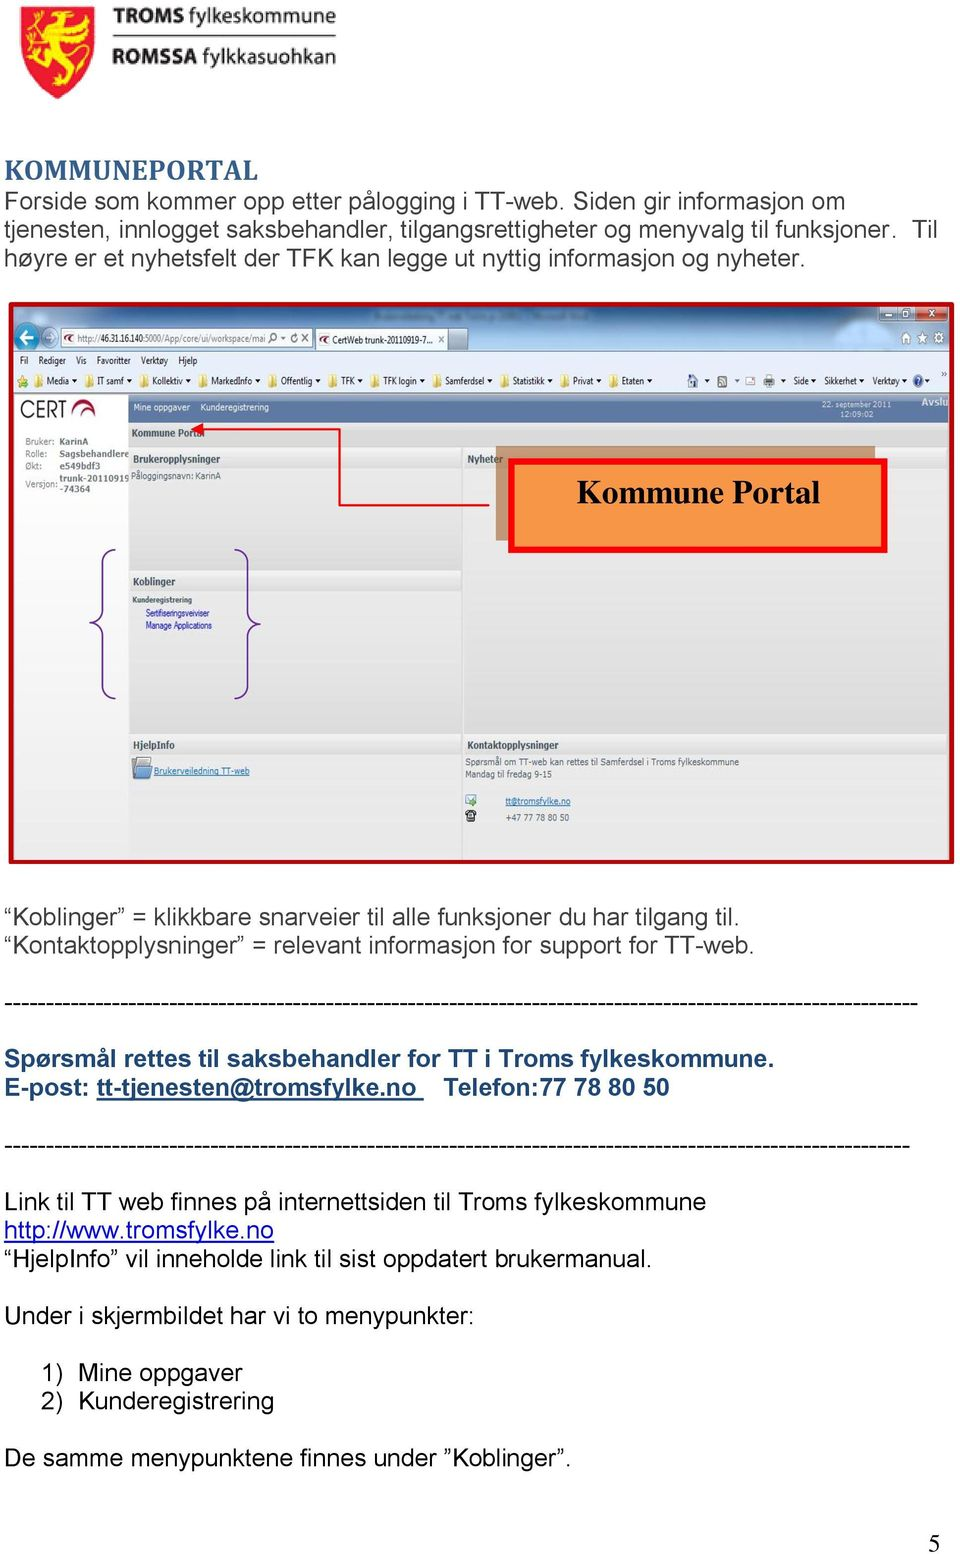 Kontaktopplysninger = relevant informasjon for support for TT-web.